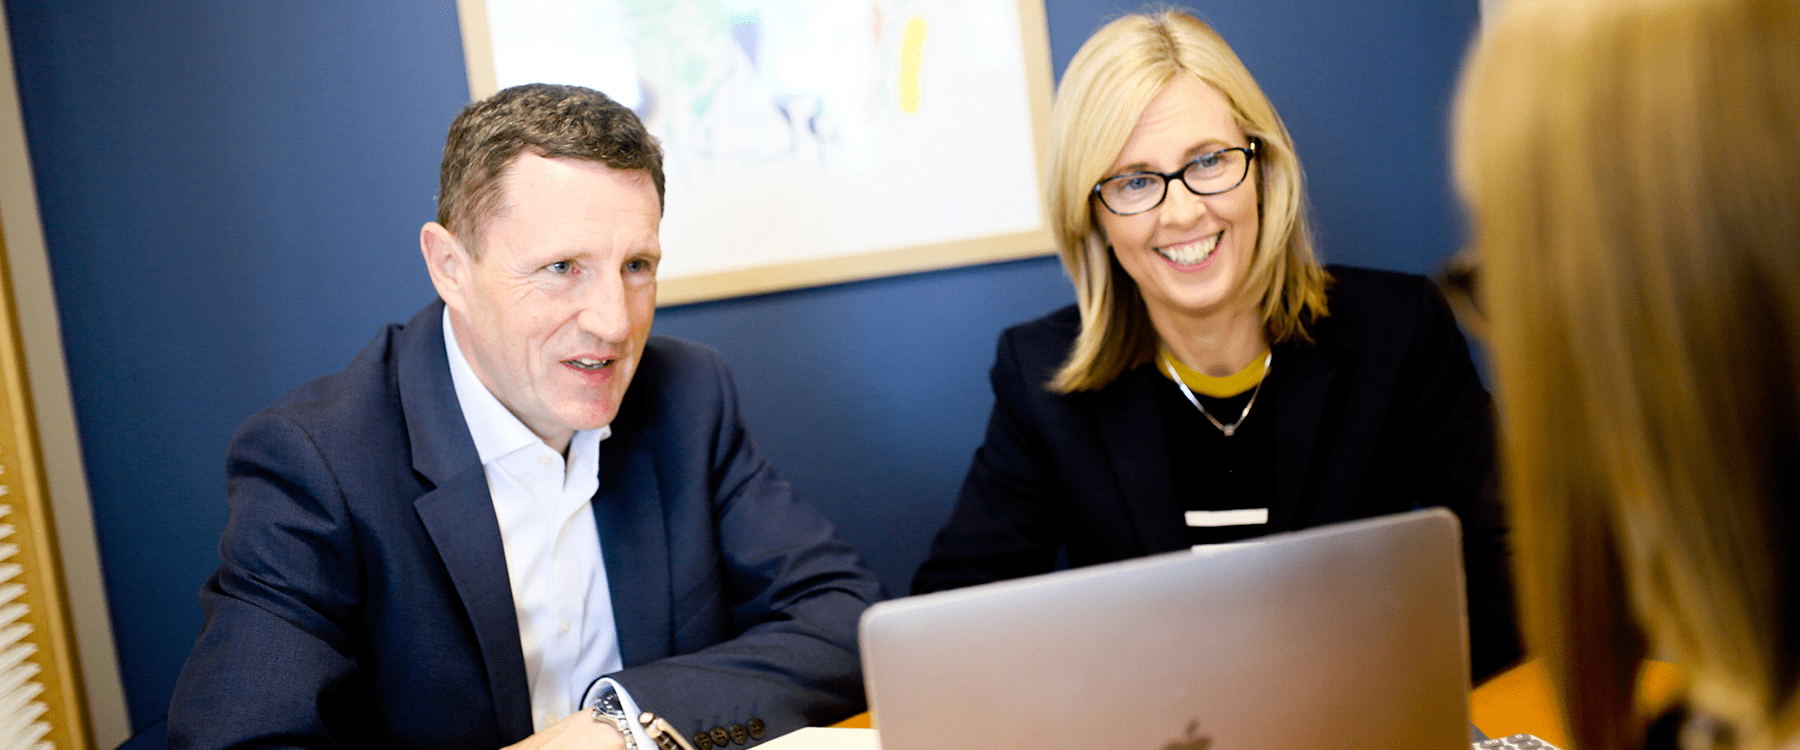 Morrissey Accountants Image Second